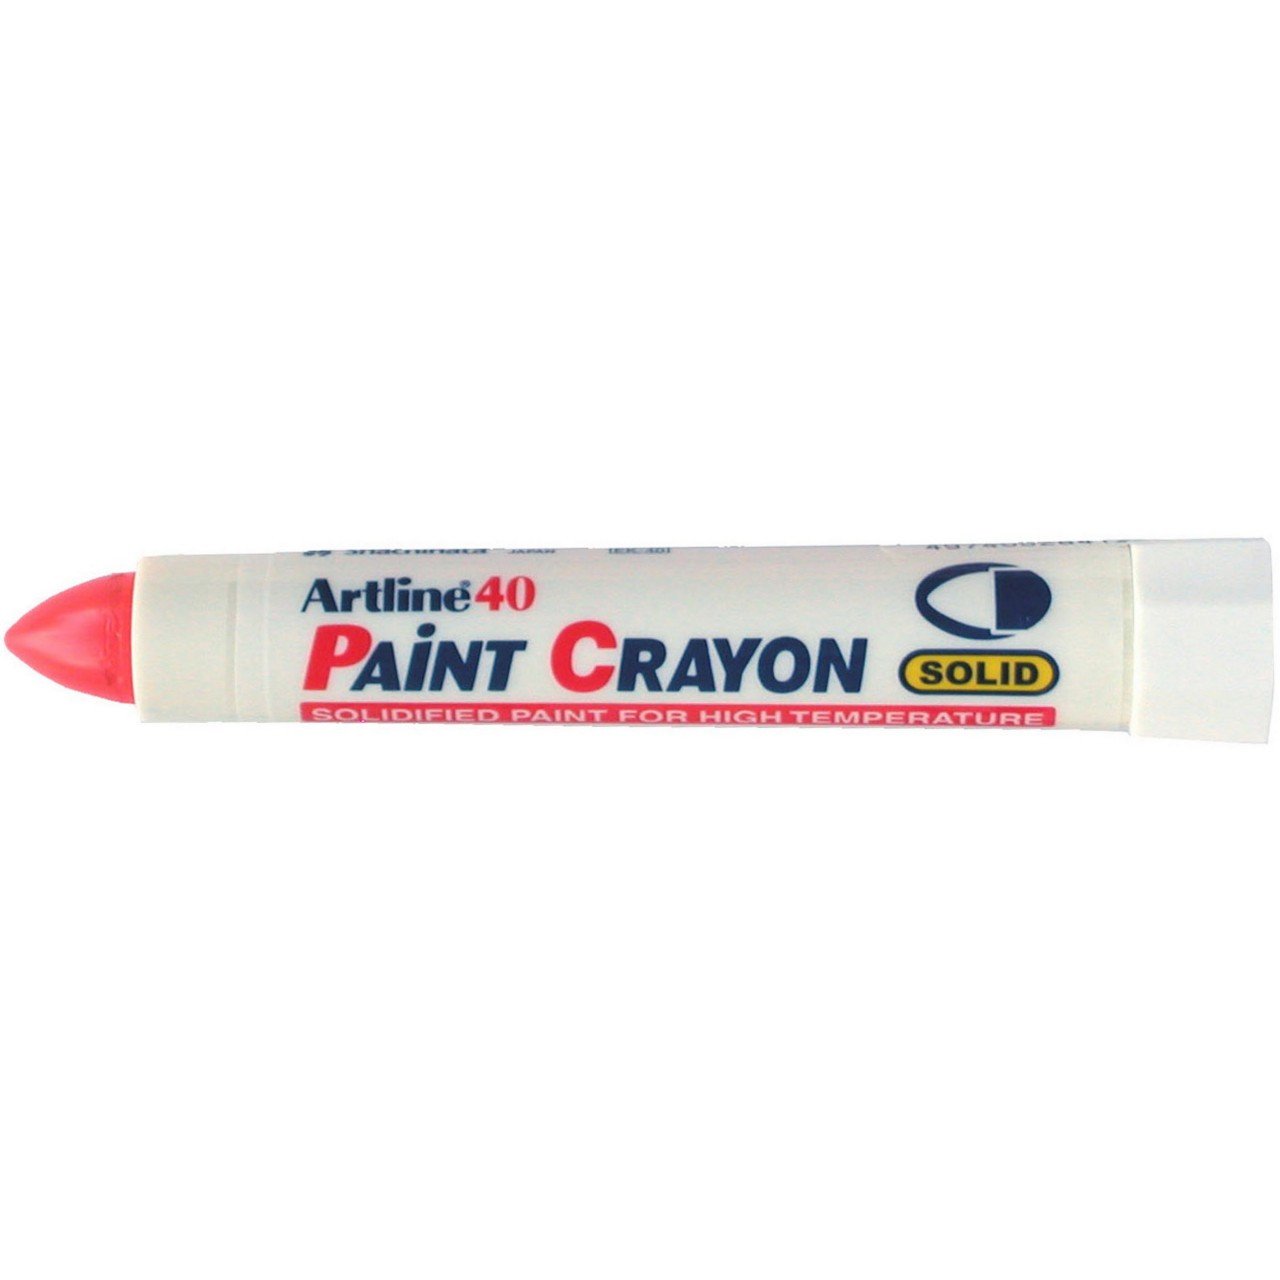 Artline 40 Paint Crayon Red (Bx12)